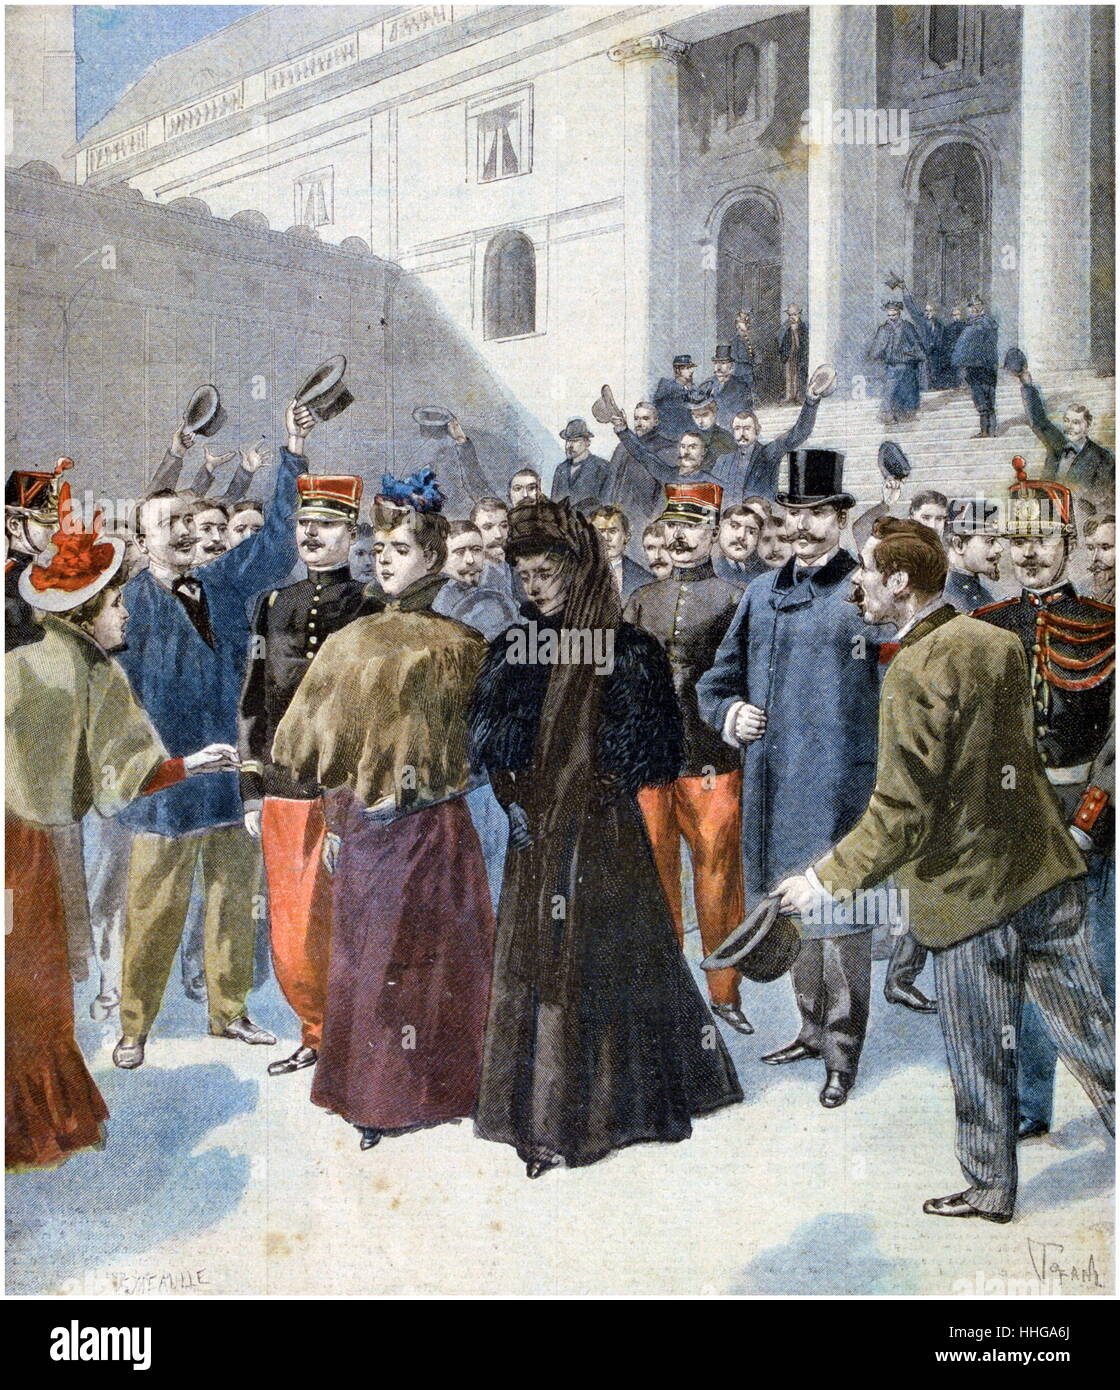 The wife of Henri Rochefort, an anti-Dreyfus journalist, leaves the libel trial of Joseph Reinach, - Stock Image